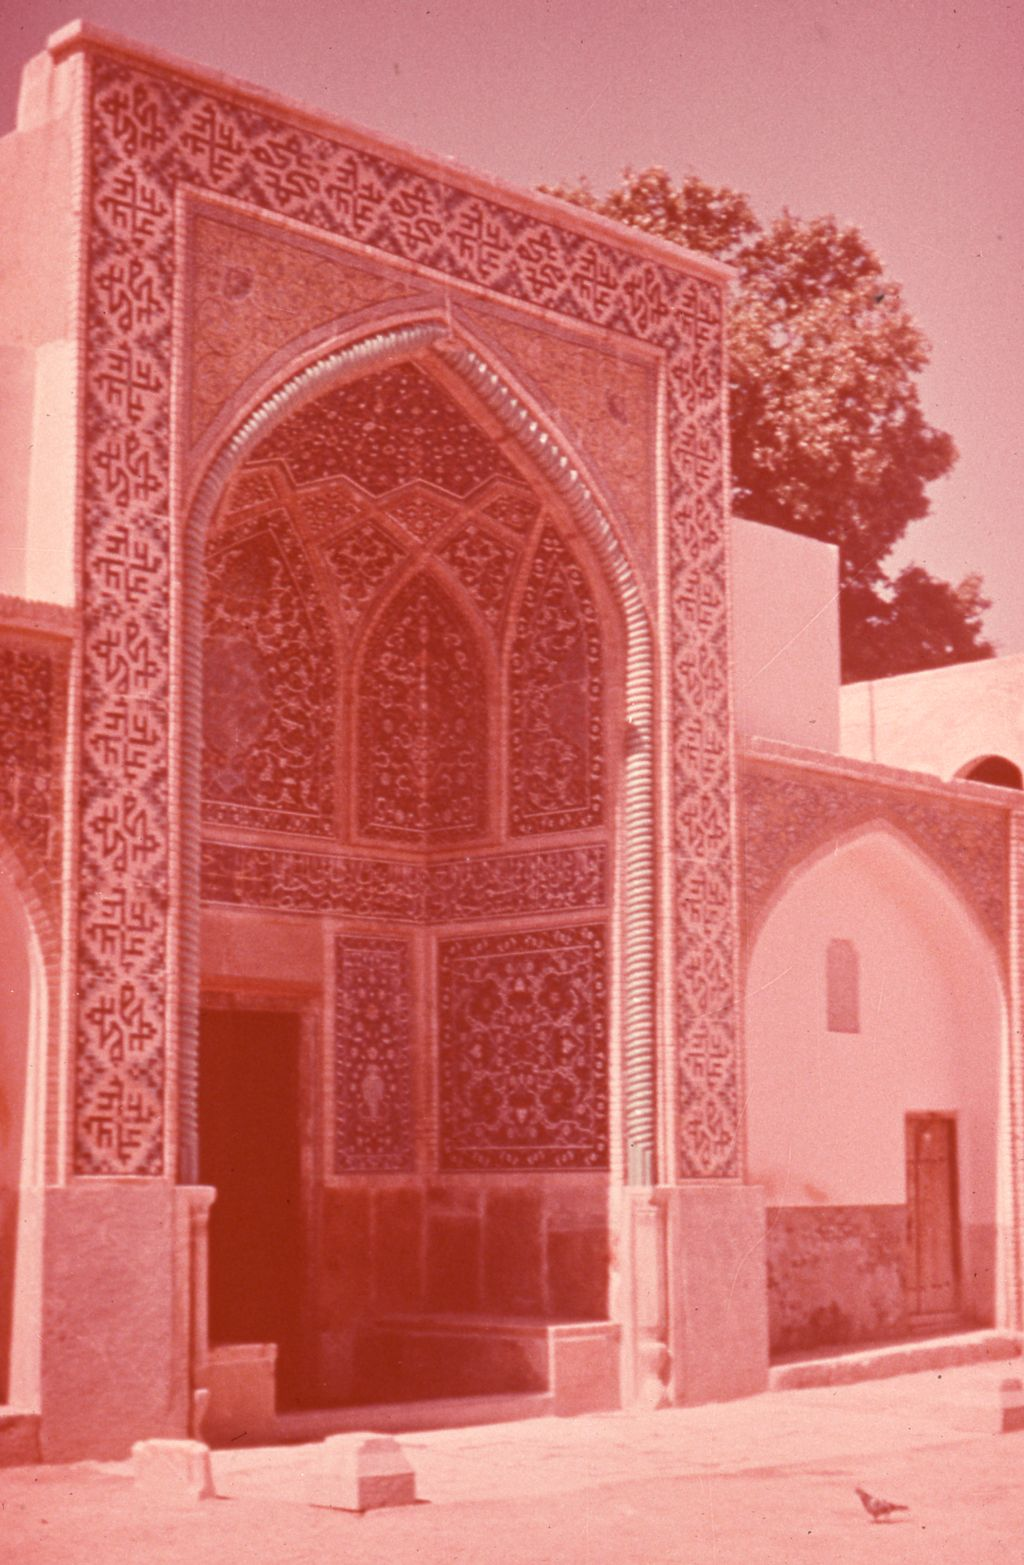 Unidentified iwan in Islamic courtyard